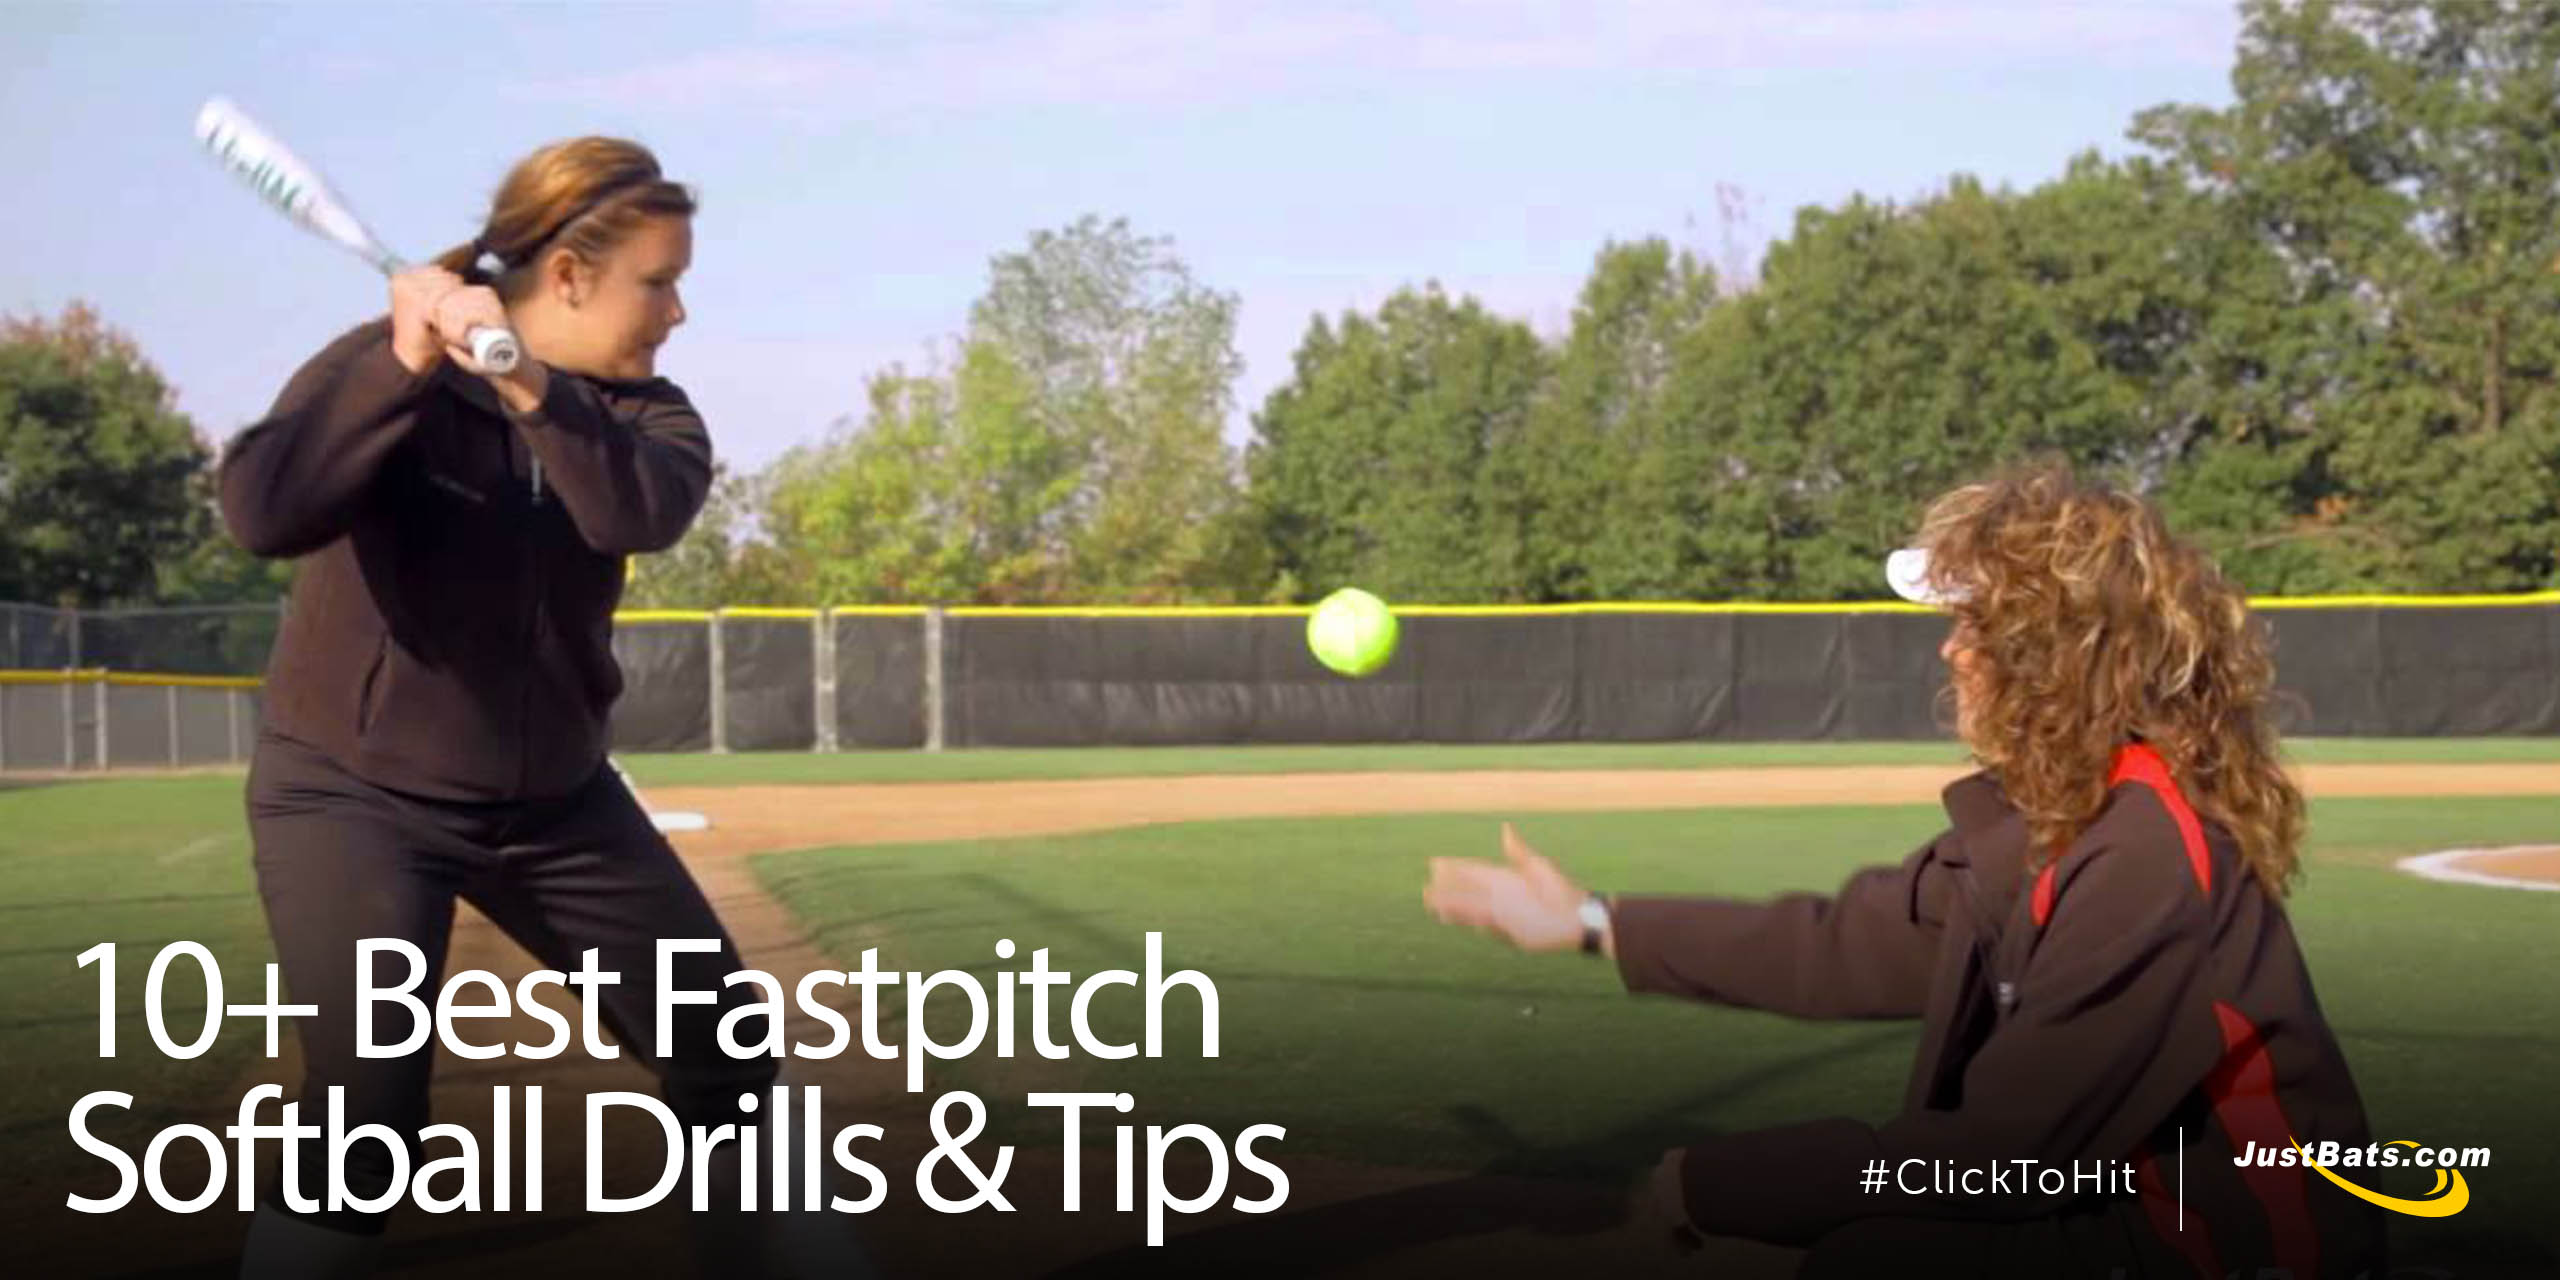 10+ Best Fastpitch Softball Drills - Blog.jpg